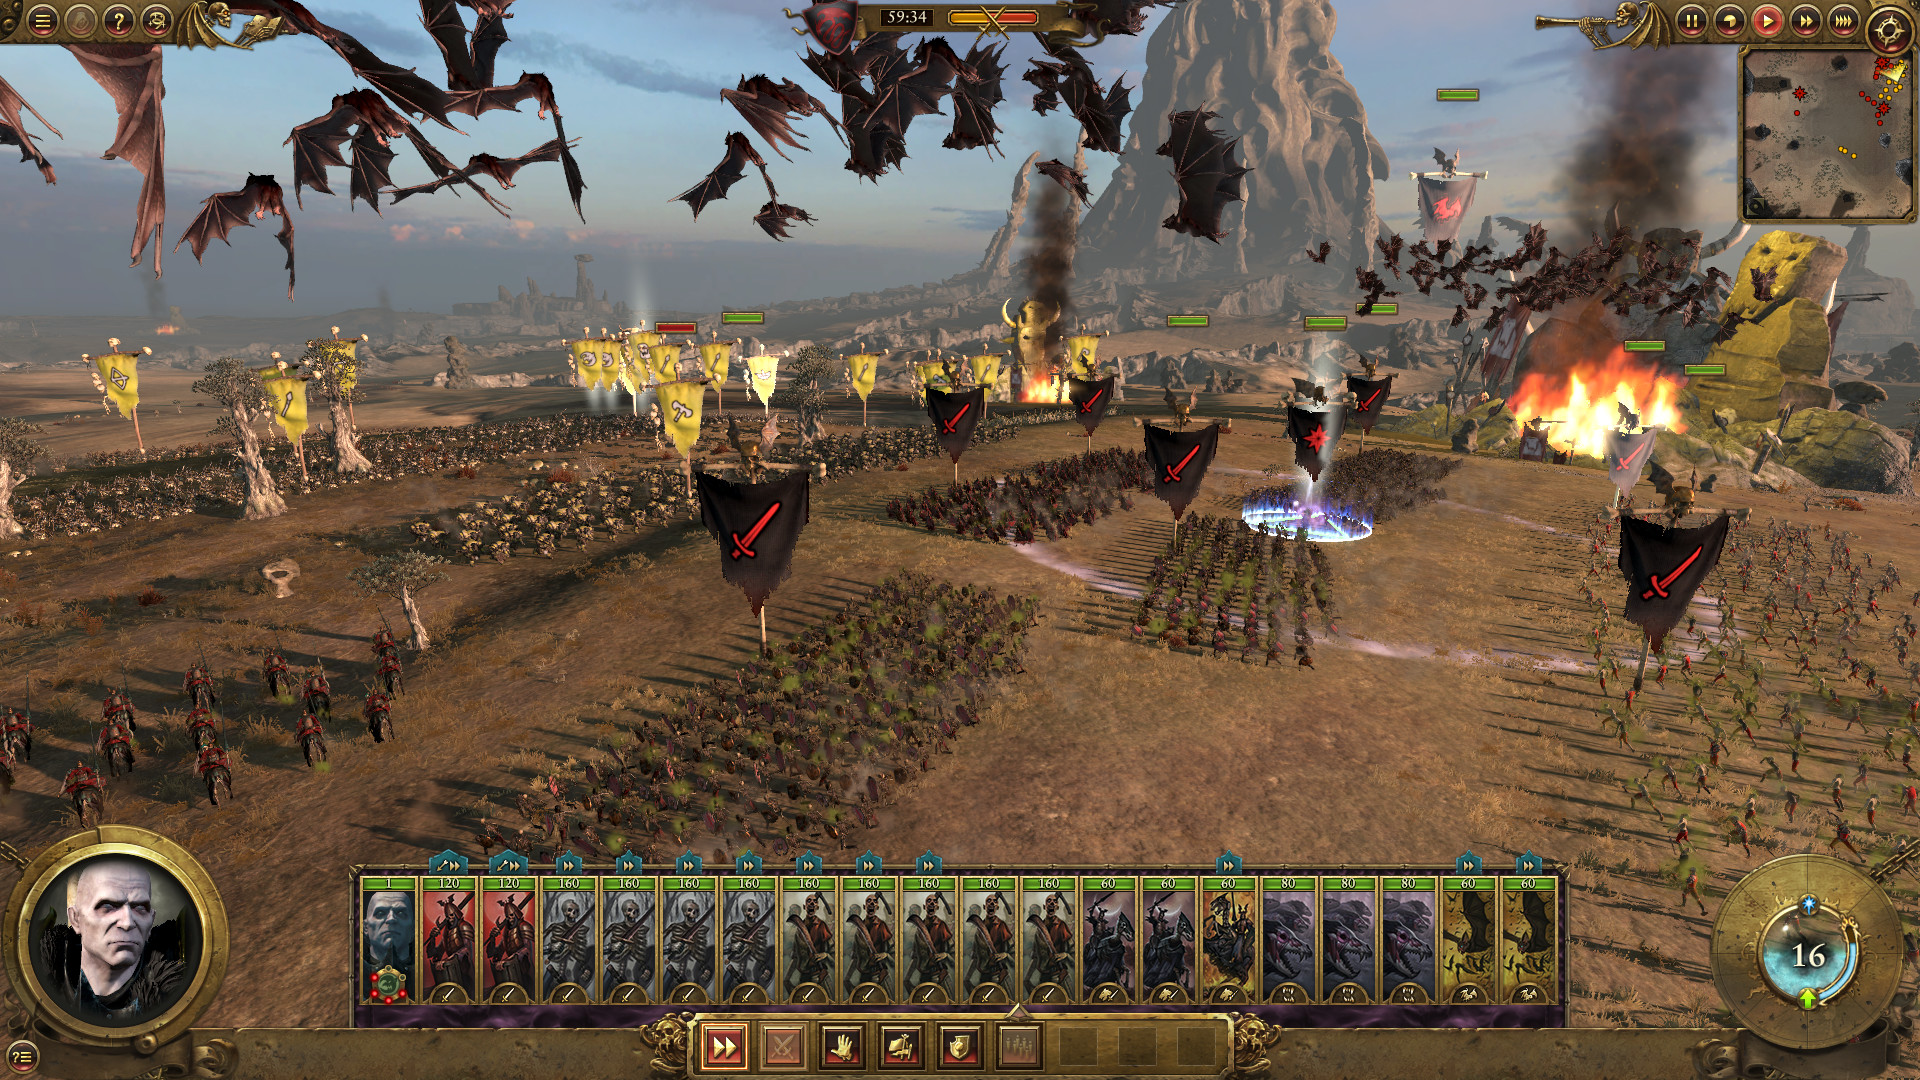 ss_8e269324ebfb94e64bd4937a284e1d170f8cfdea.1920x1080 Total War: Warhammer First Impressions